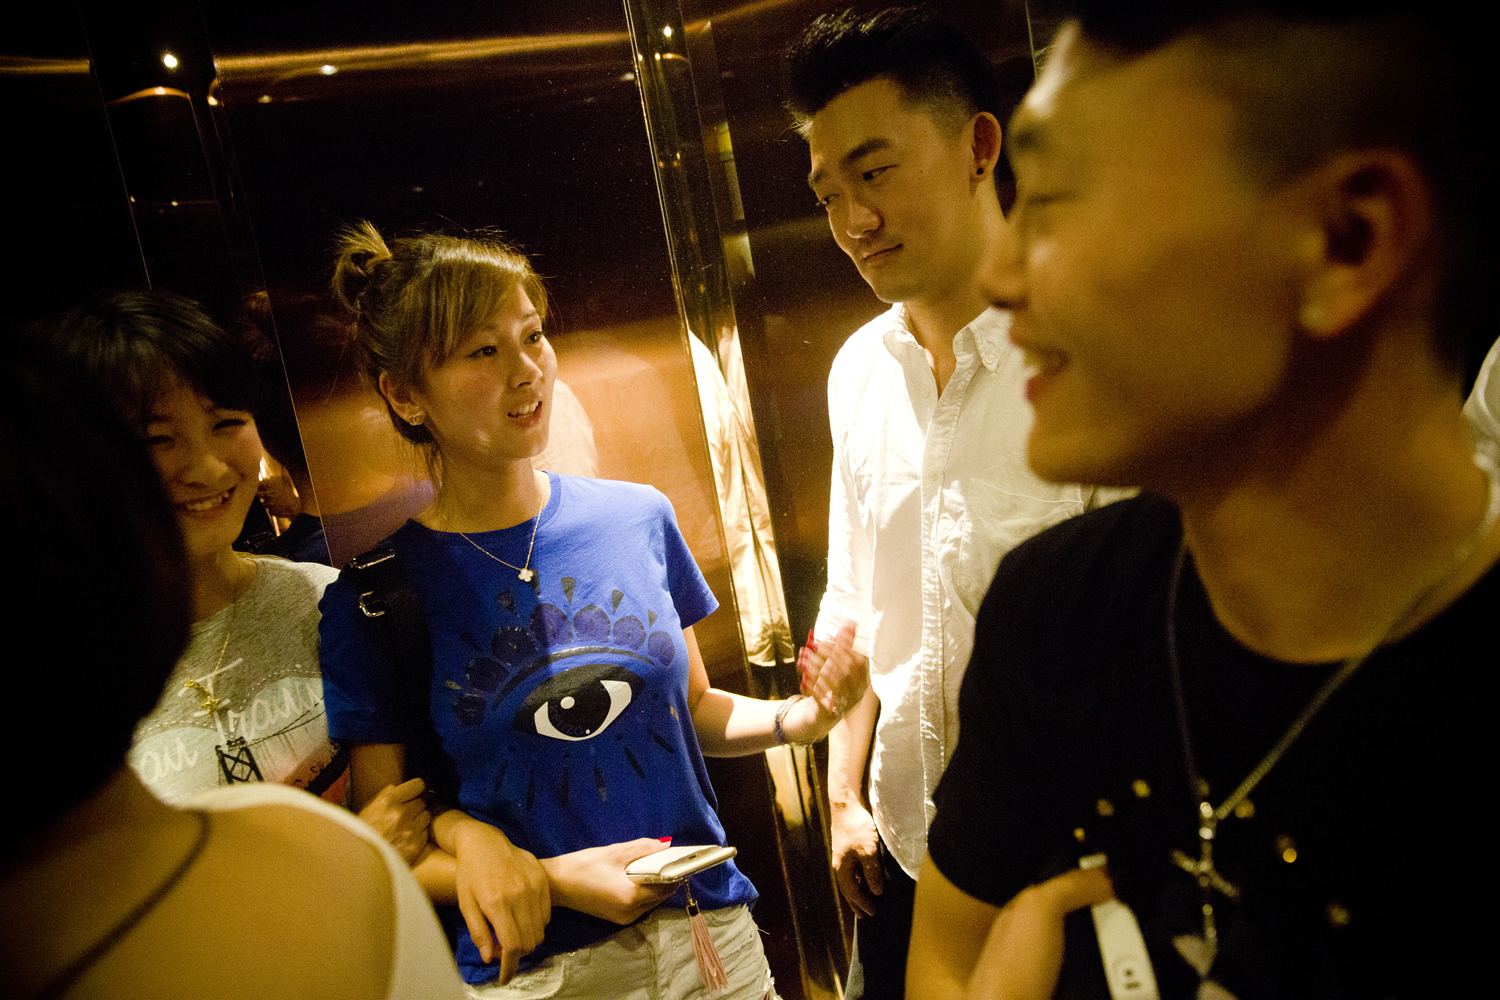 Two mentors chat with women they invited in the elevator as they leave the karaoke bar, just past midnight of May 18, 2015.